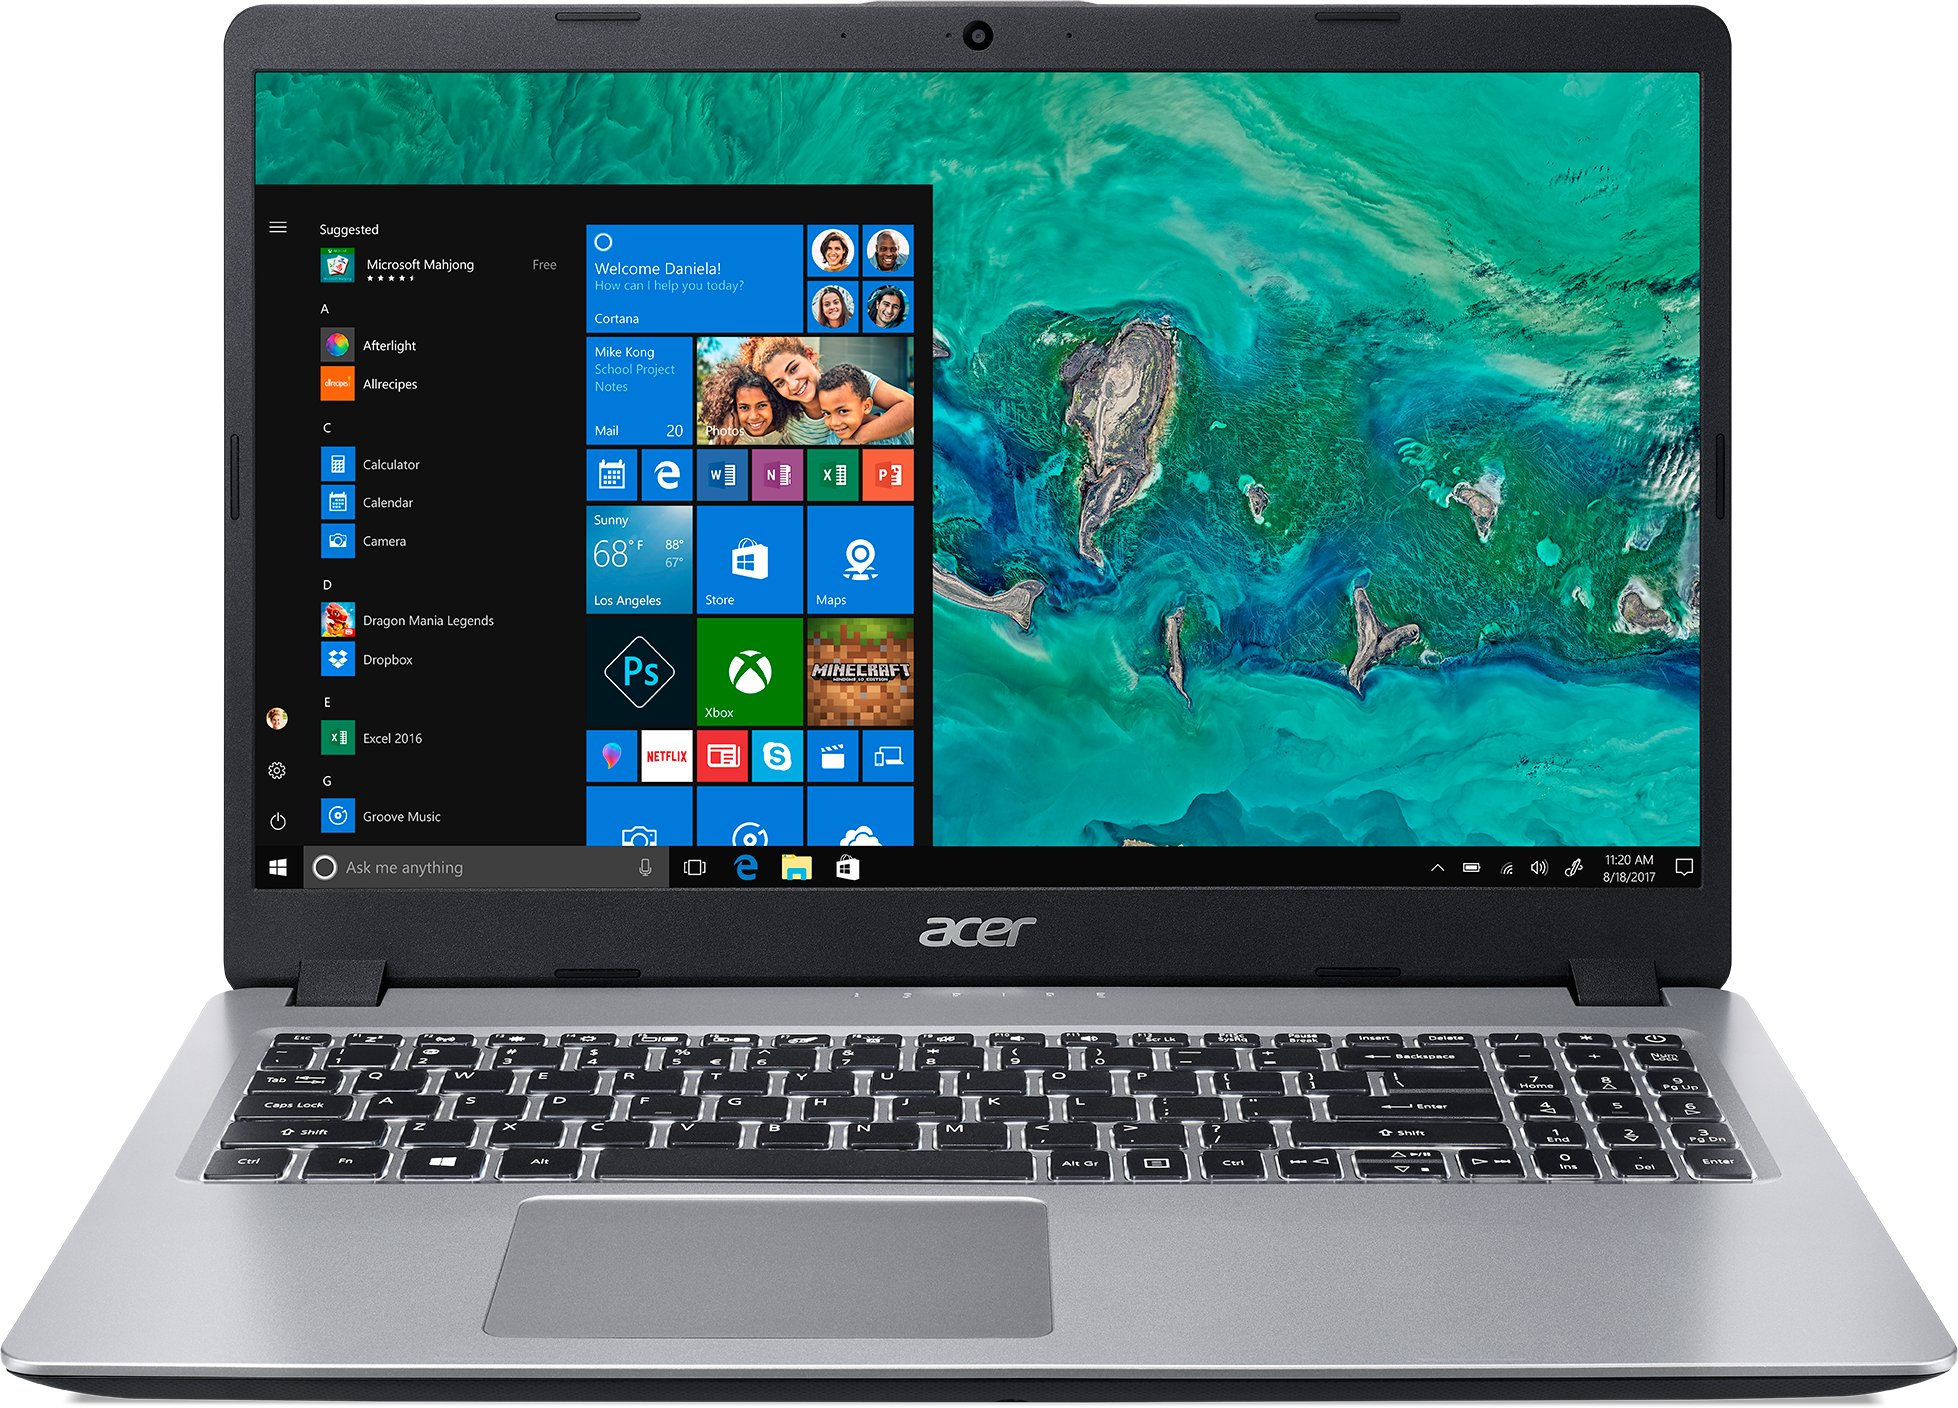 Acer Aspire 5 A515-52-79N9